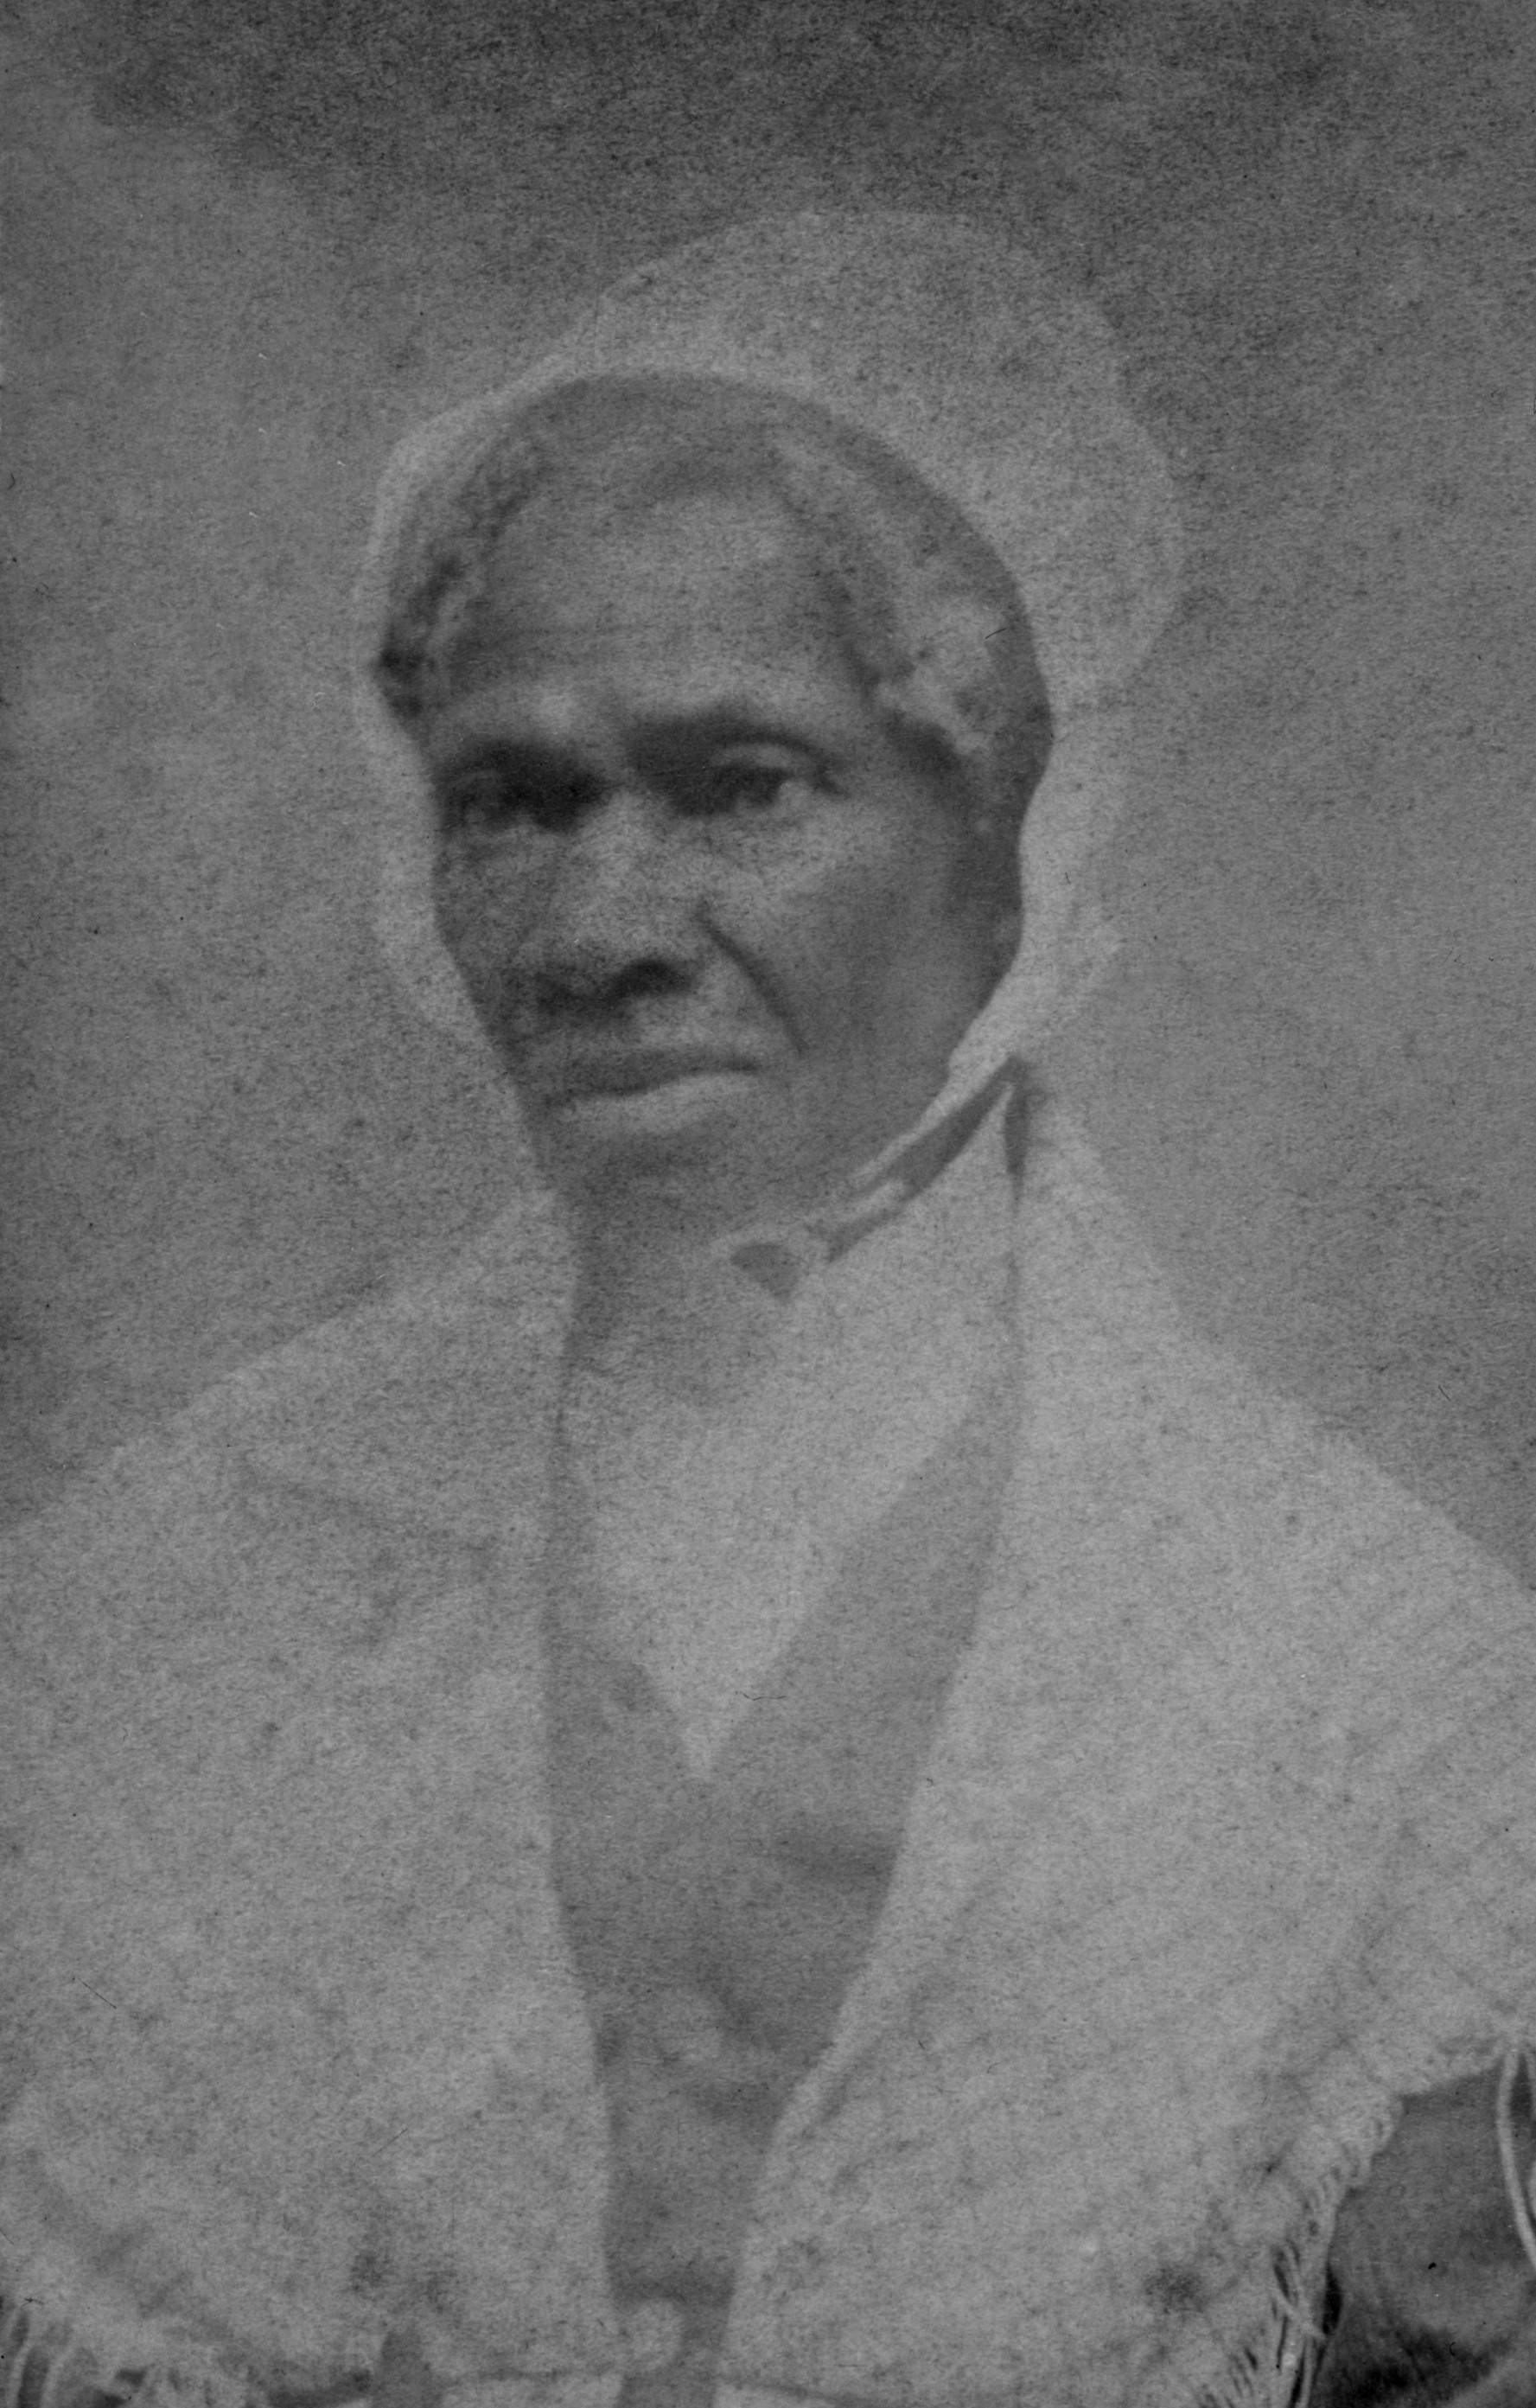 Sojourner Truth (c. 1797 – 1883), lecturer, abolitionist and women